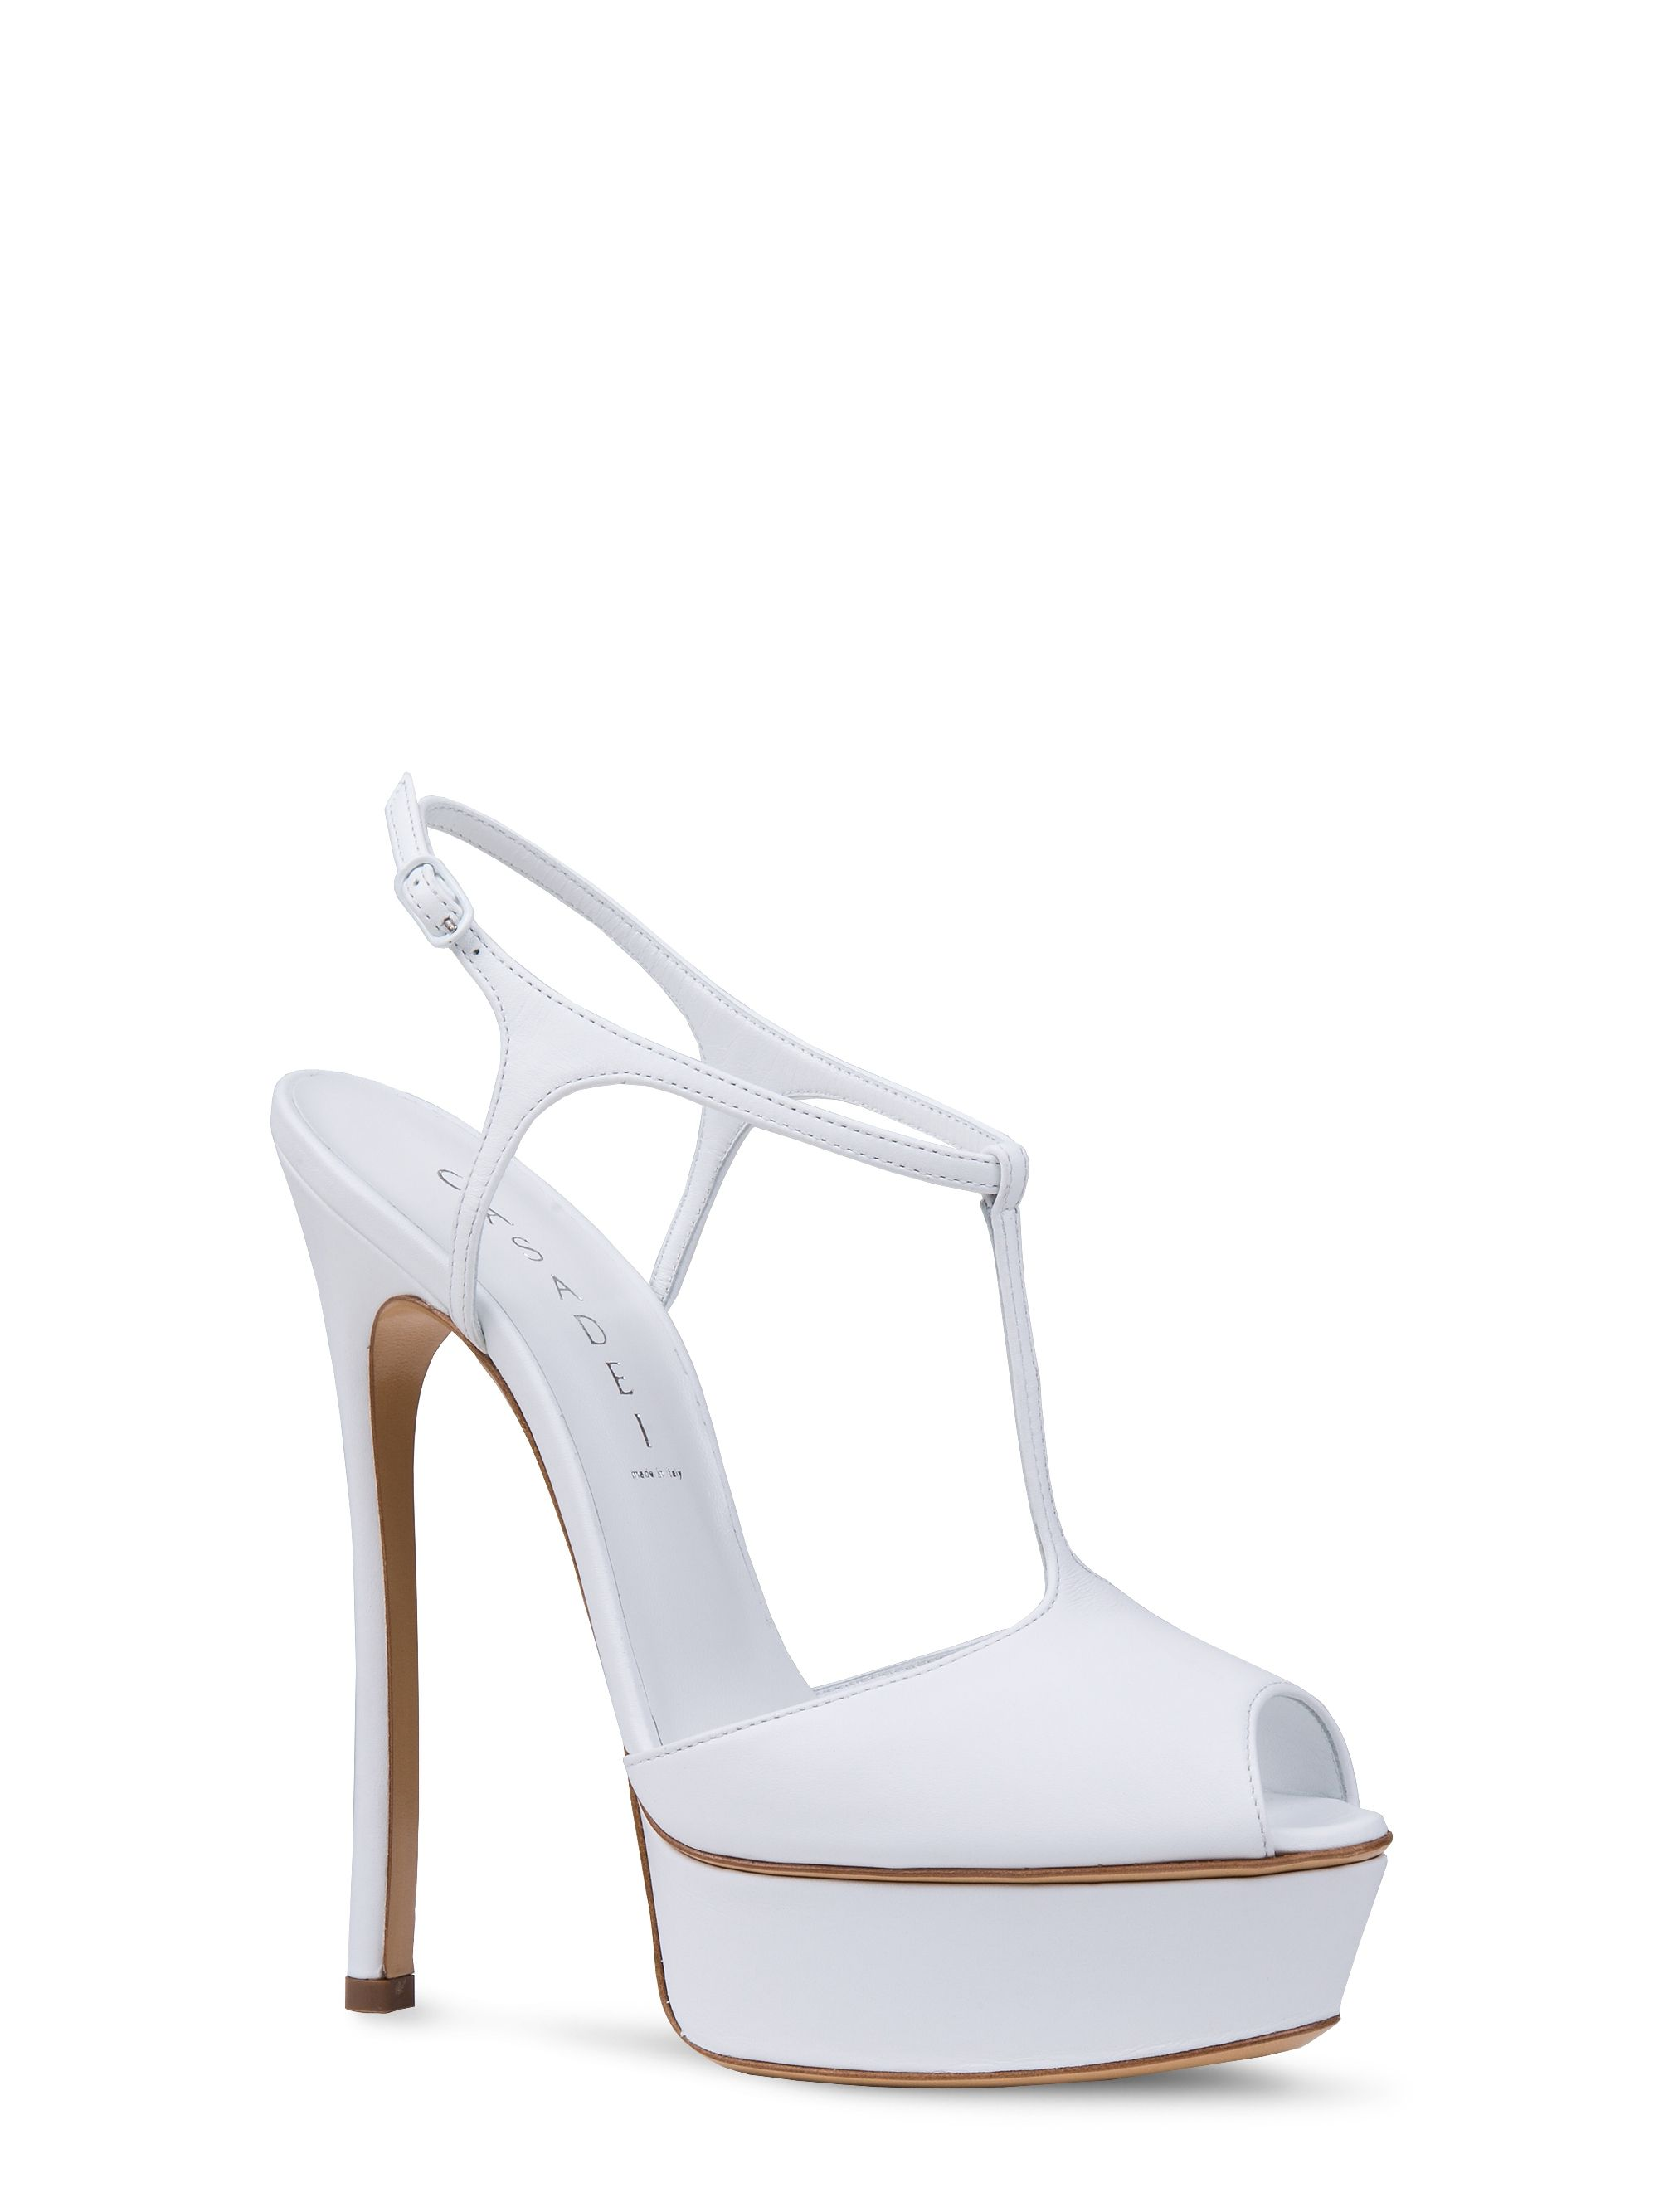 CASADEI beige leather heel sandals Sandali in pelle beige con tacco